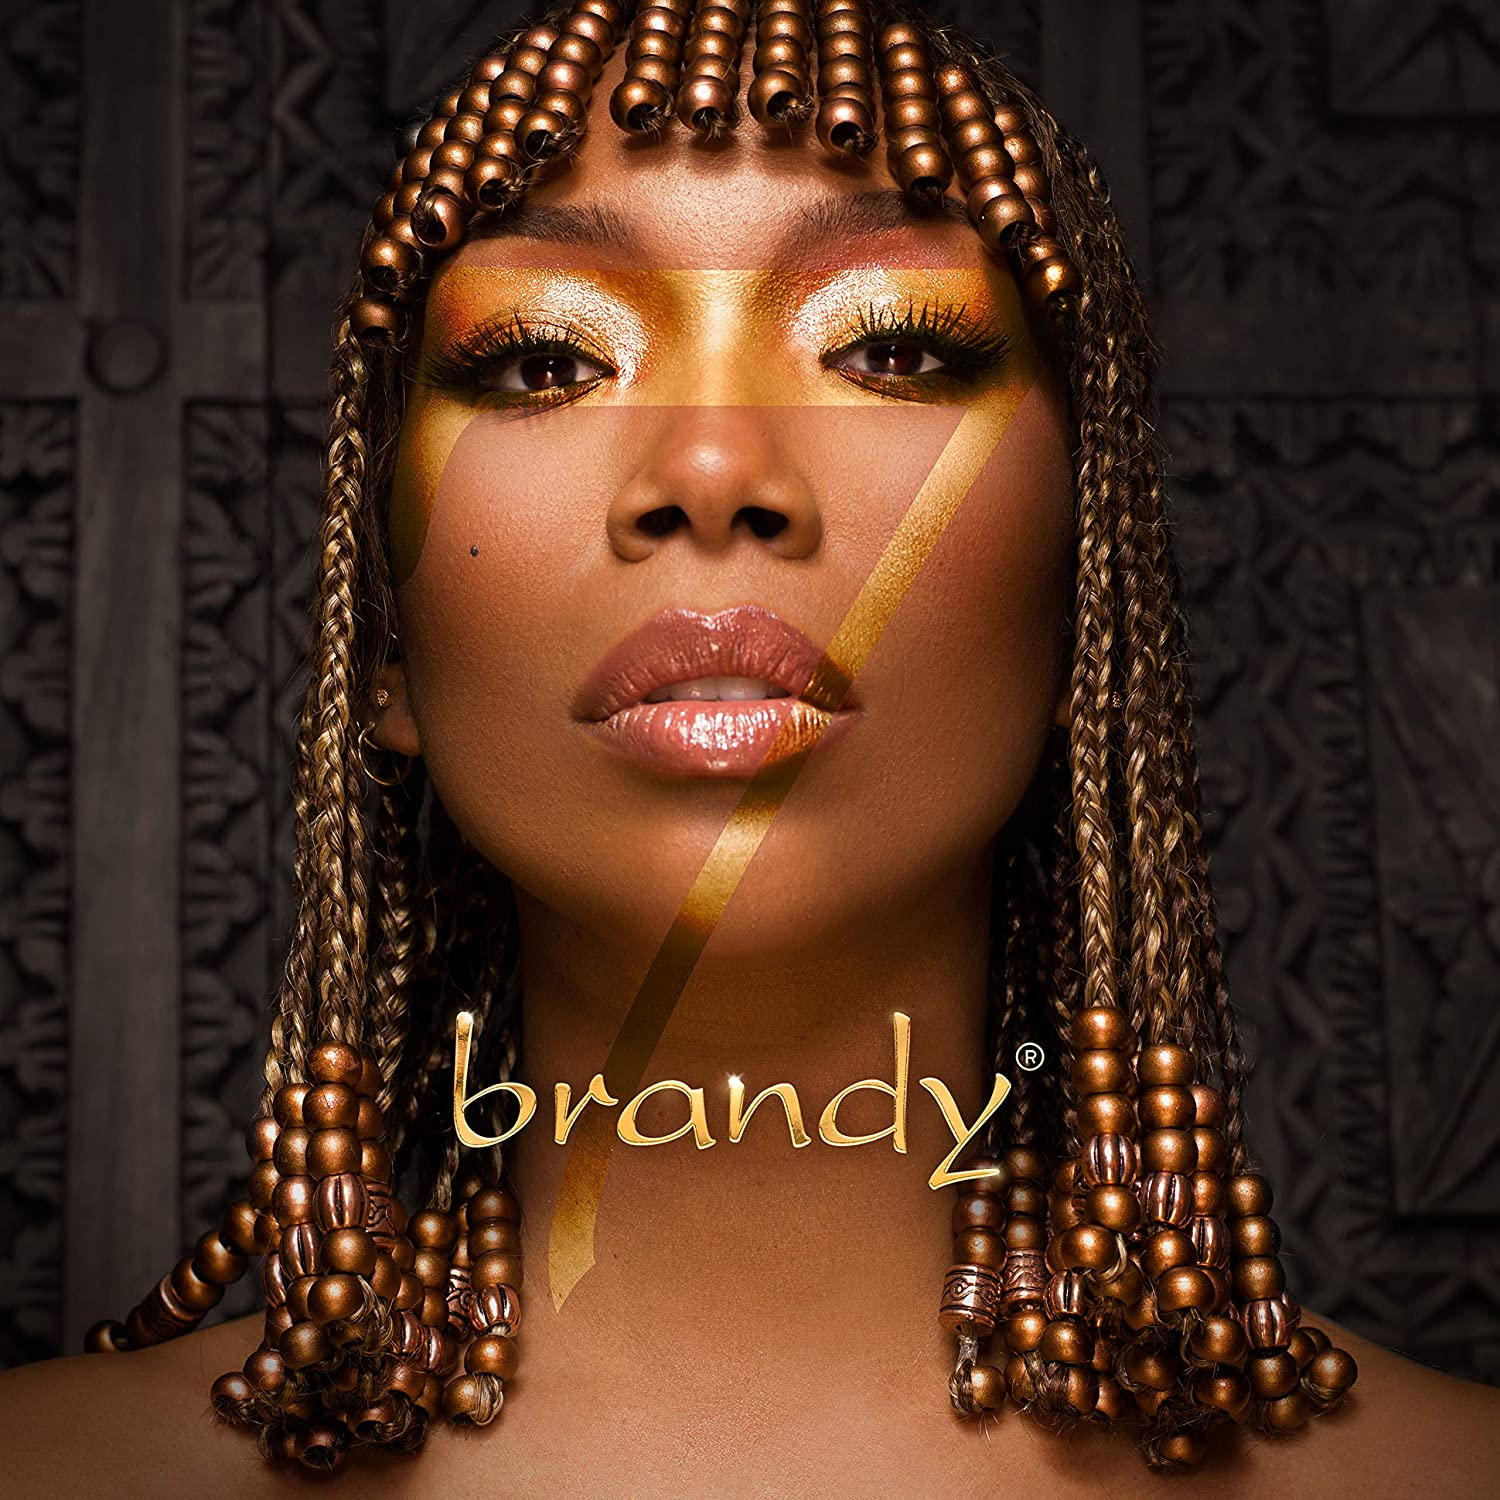 Singer now is where brandy Brandy is